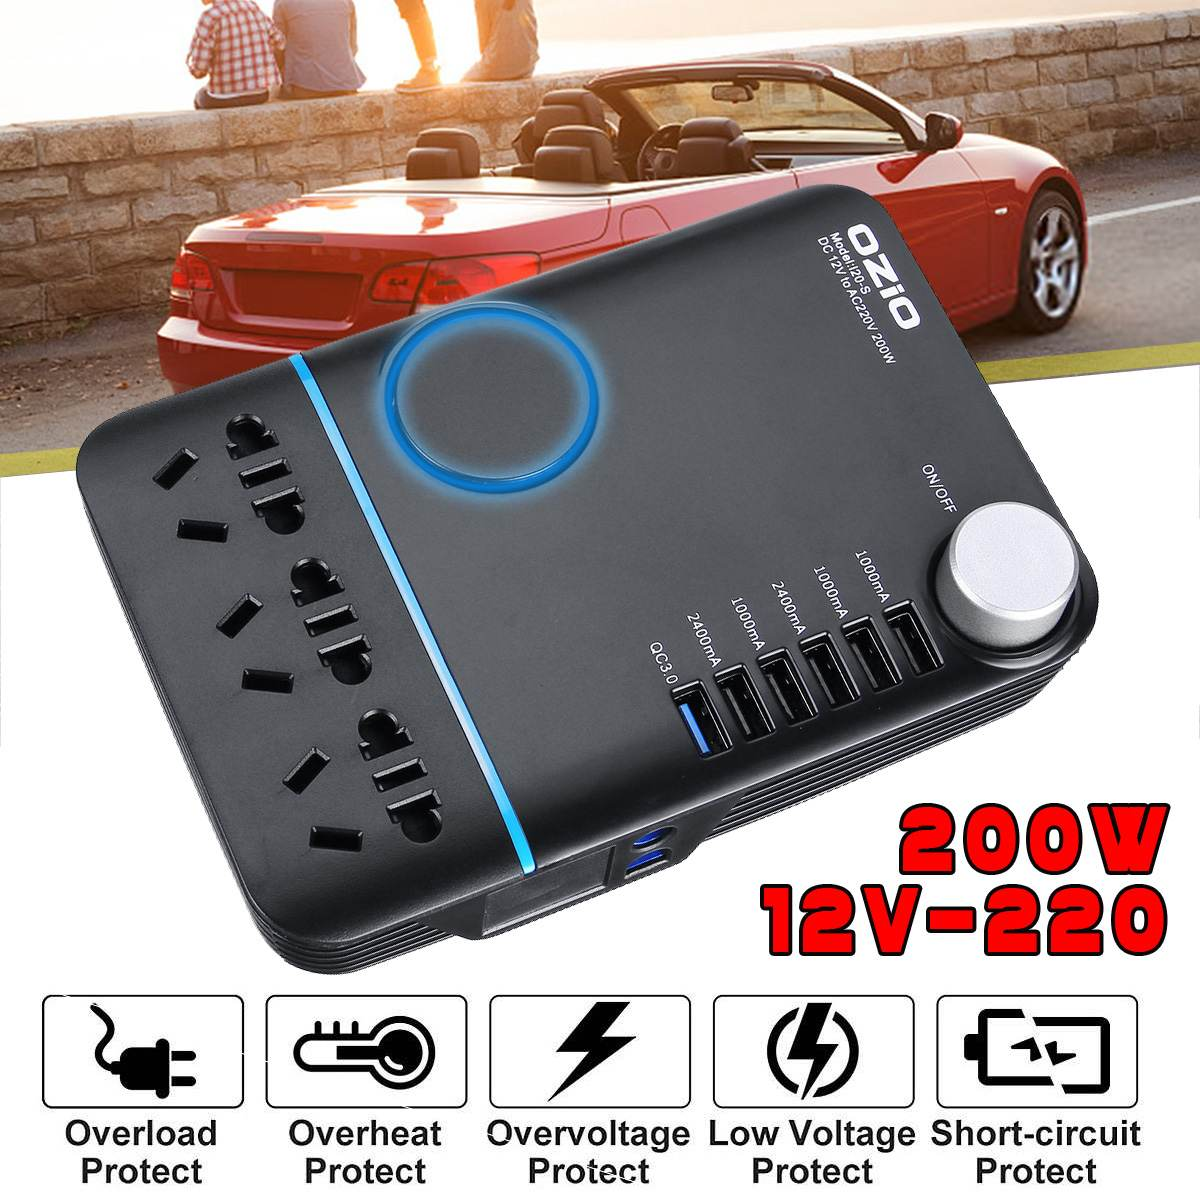 Ozio 200W Car Power Cigarette Lighter Inverter DC 12V To AC 220V Converter Charger Adapter Transformer Lighter Socket USB Output